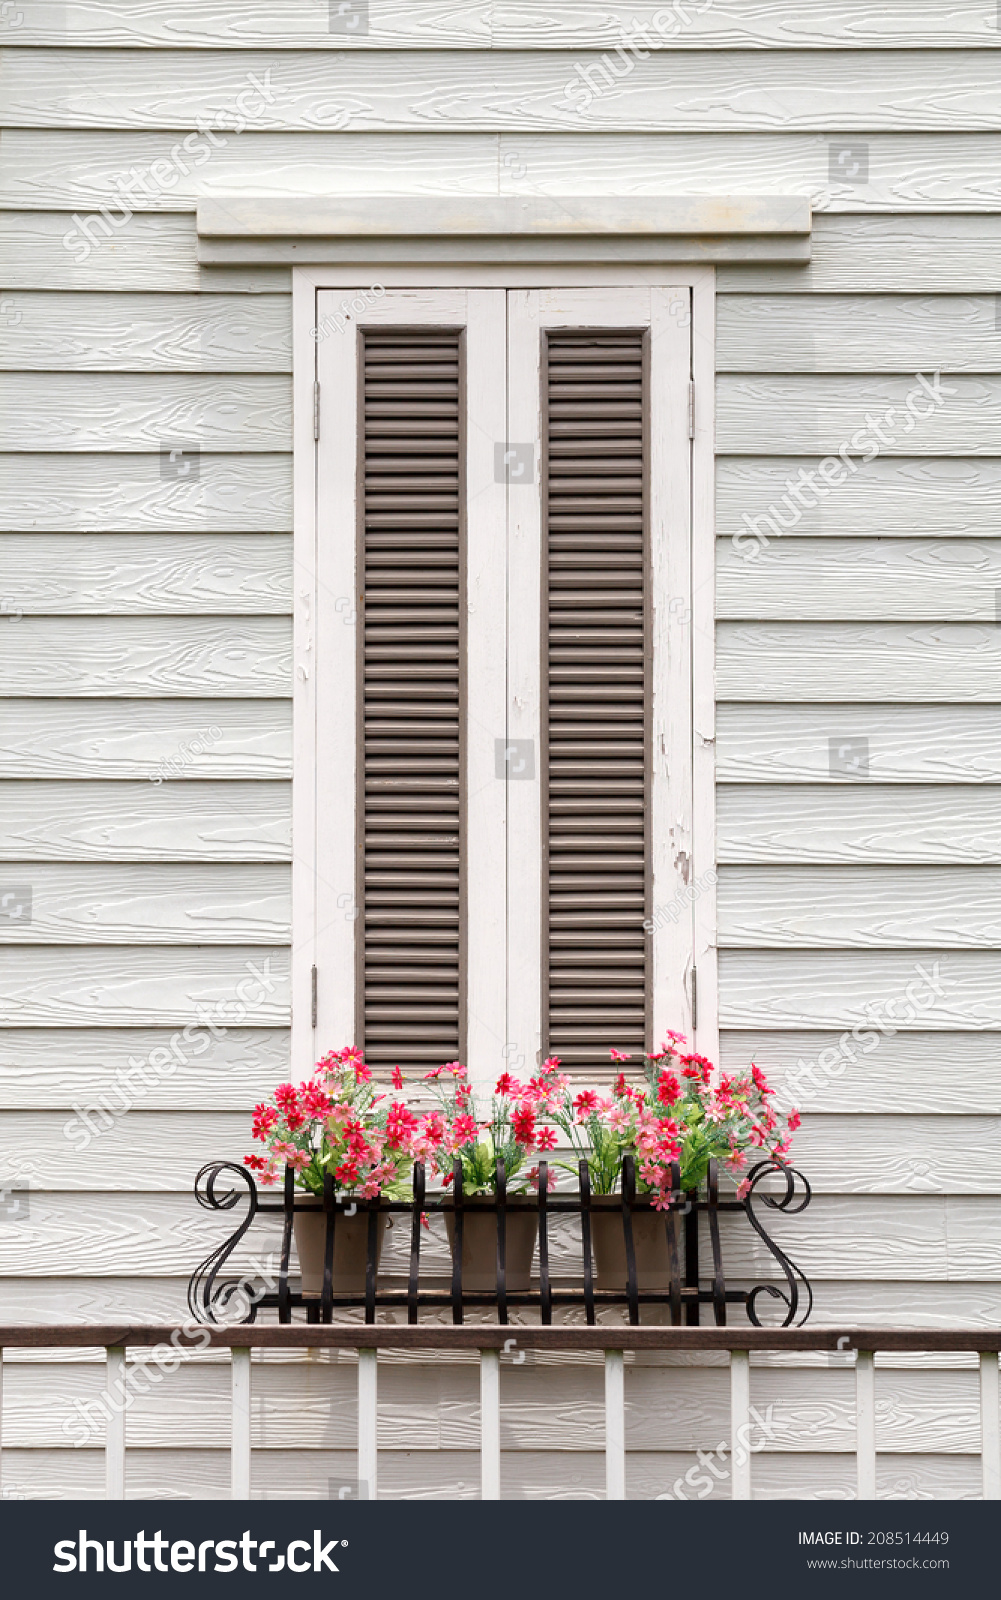 European Style Window And Flower Stock Photo 208514449